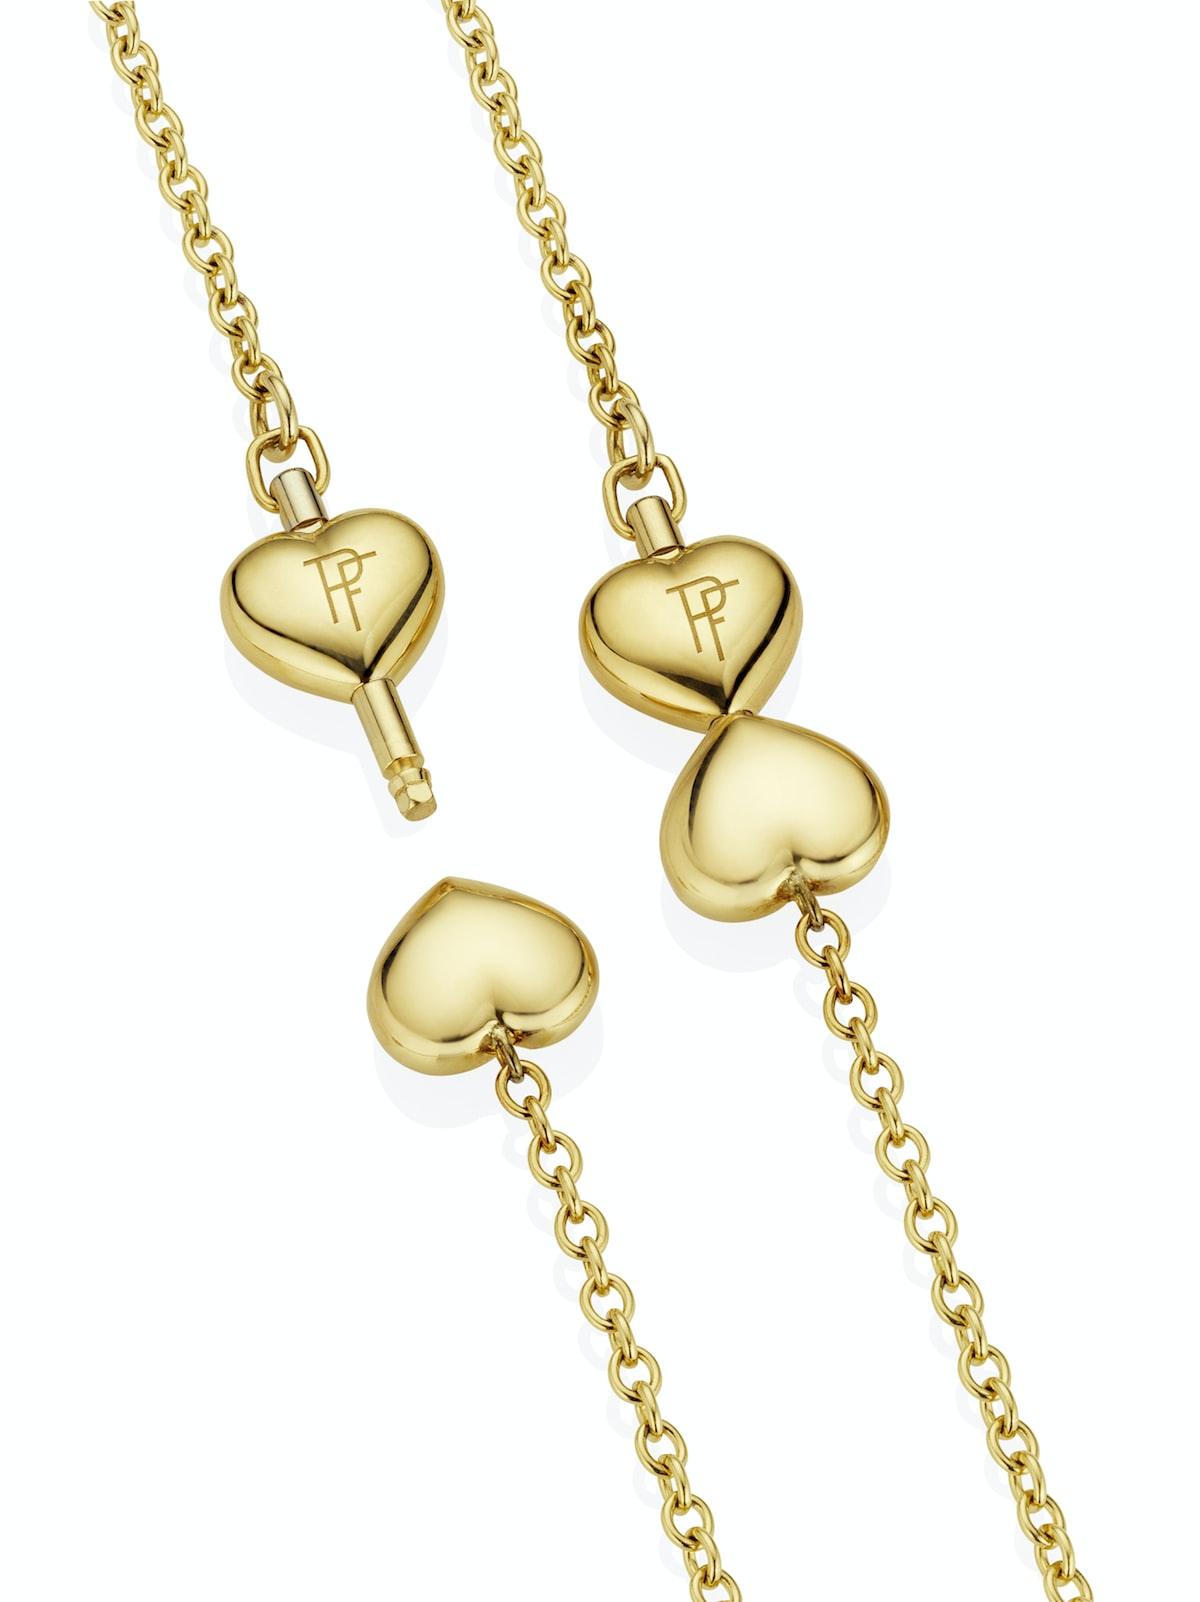 """Paul forrest co winding key Introducing: The """"Heart's Passion"""" Beating Mechanical Heart Pendant From Paul Forrest Co. Introducing: The """"Heart's Passion"""" Beating Mechanical Heart Pendant From Paul Forrest Co. IMG 1352"""